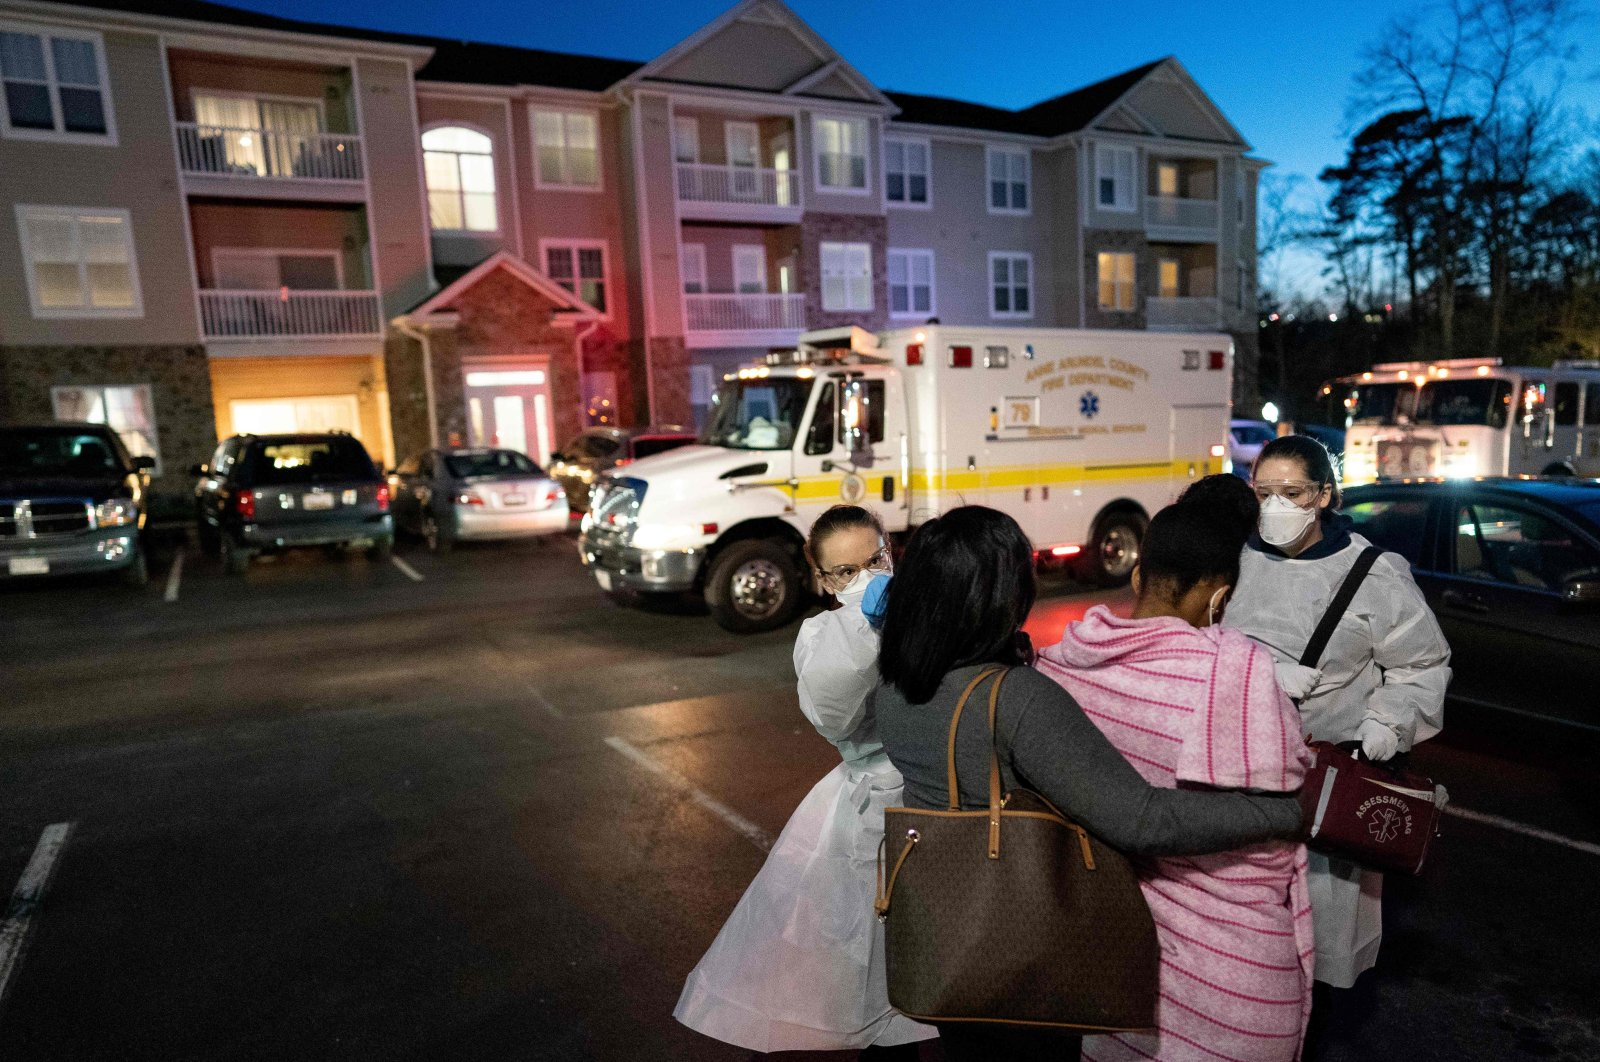 Emergency medical technicians with Anne Arundel County Fire Department assess a young woman experiencing COVID-19 symptoms in Glen Burnie, Maryland on April 10, 2020. (AFP Photo)